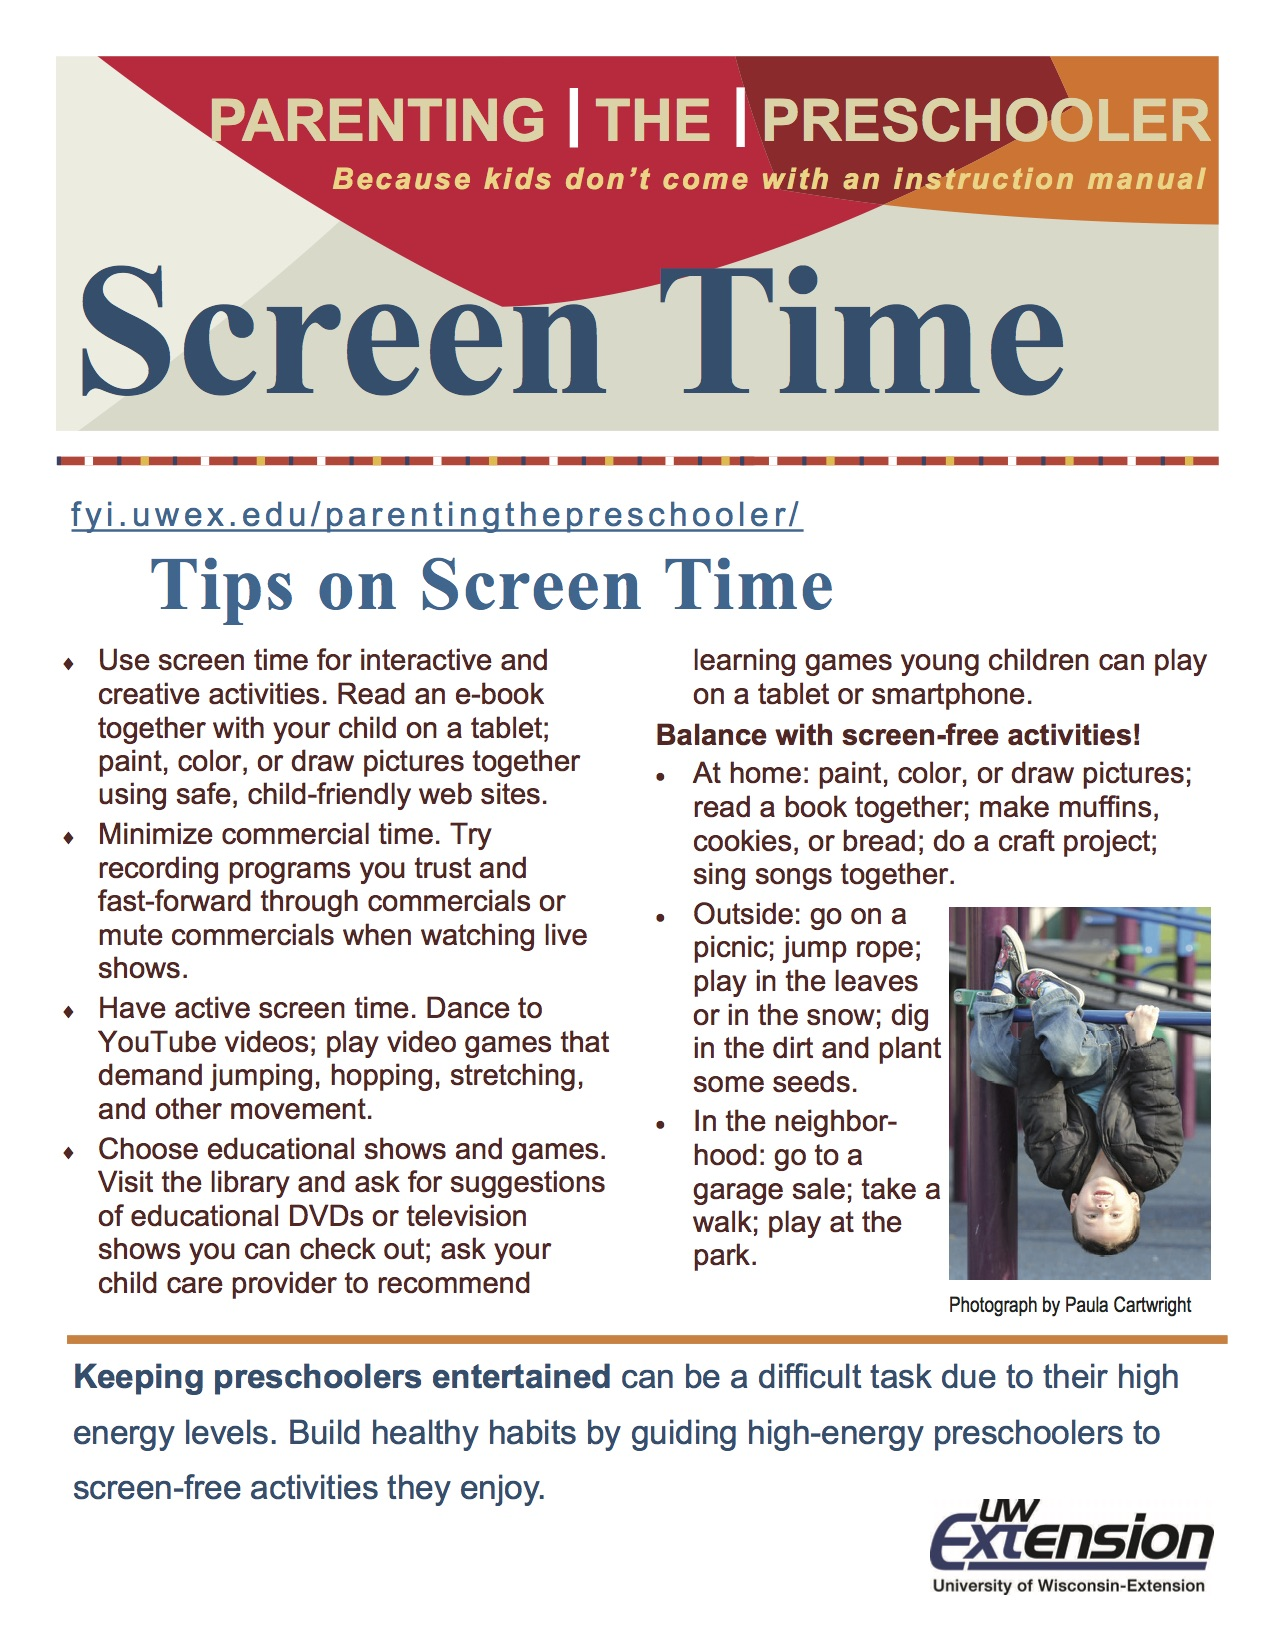 PtP-Screen-Time